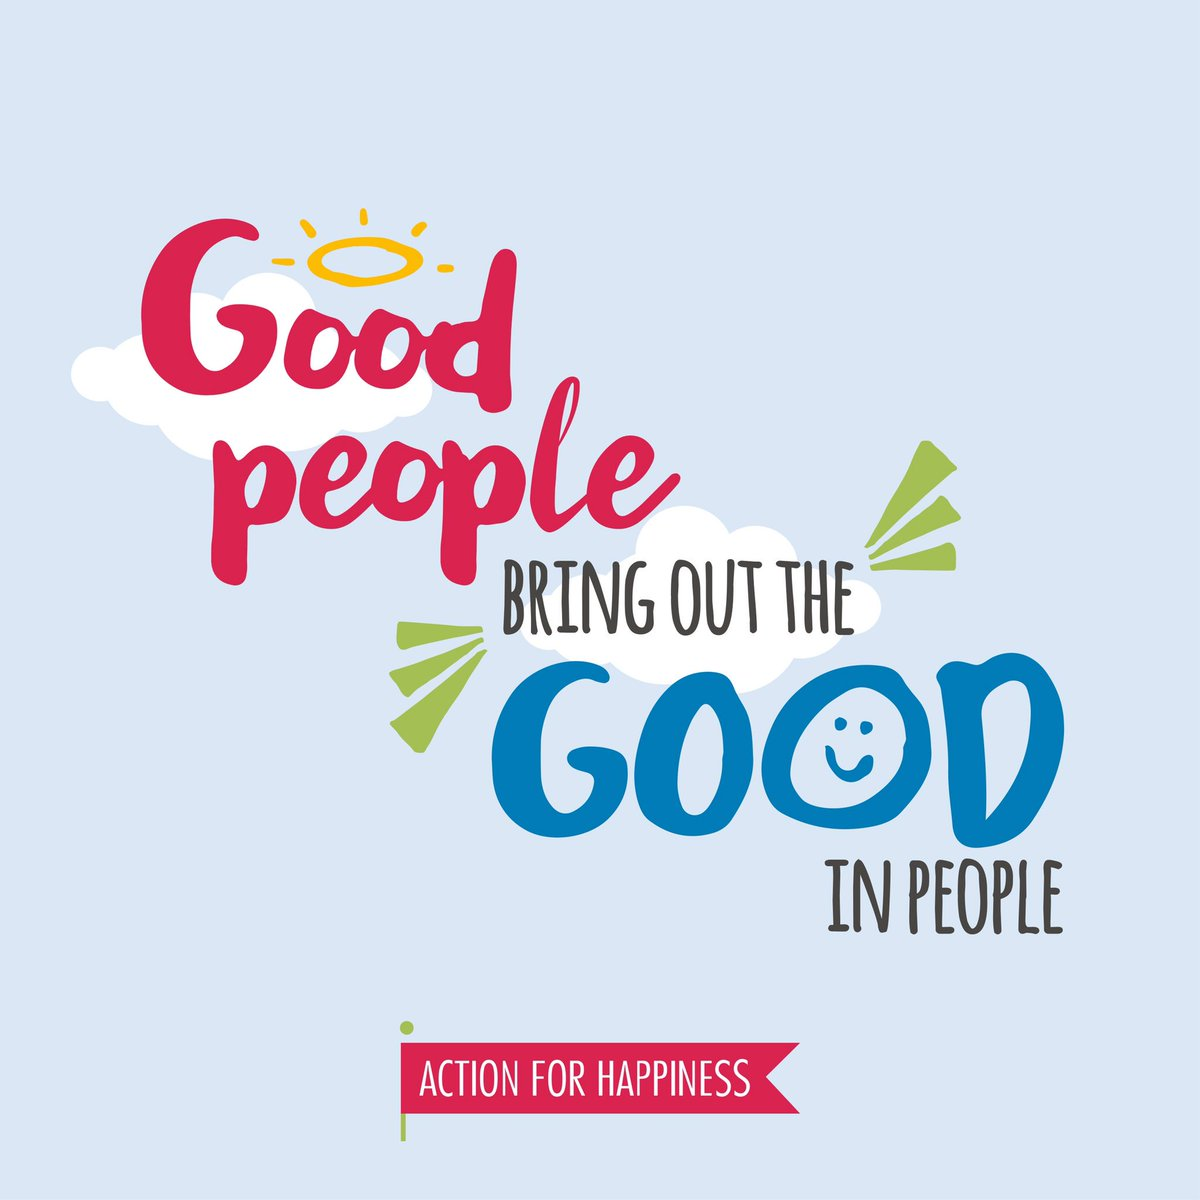 Good people bring out the good in people #FriendlyFebruary